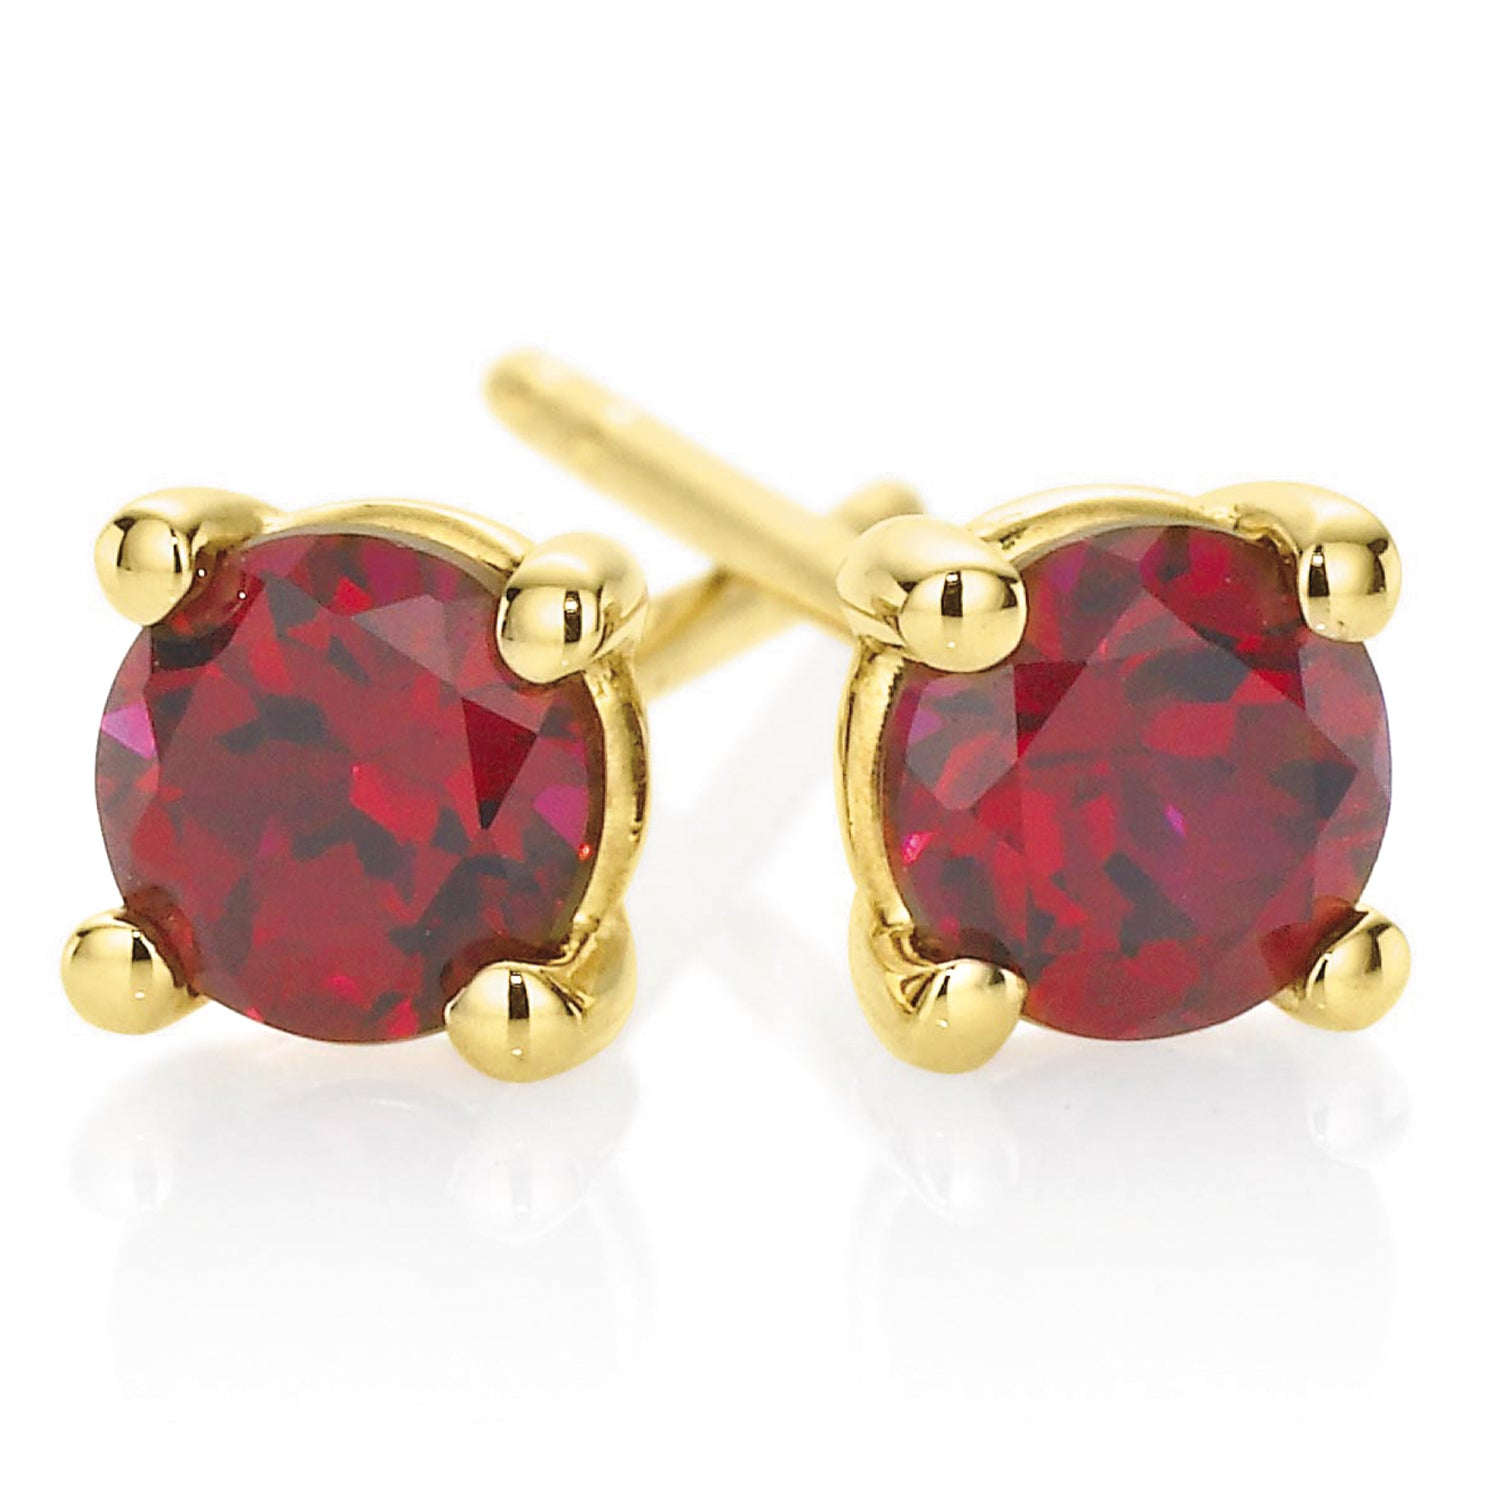 9ct Yellow Gold Round Brilliant Cut Ruby